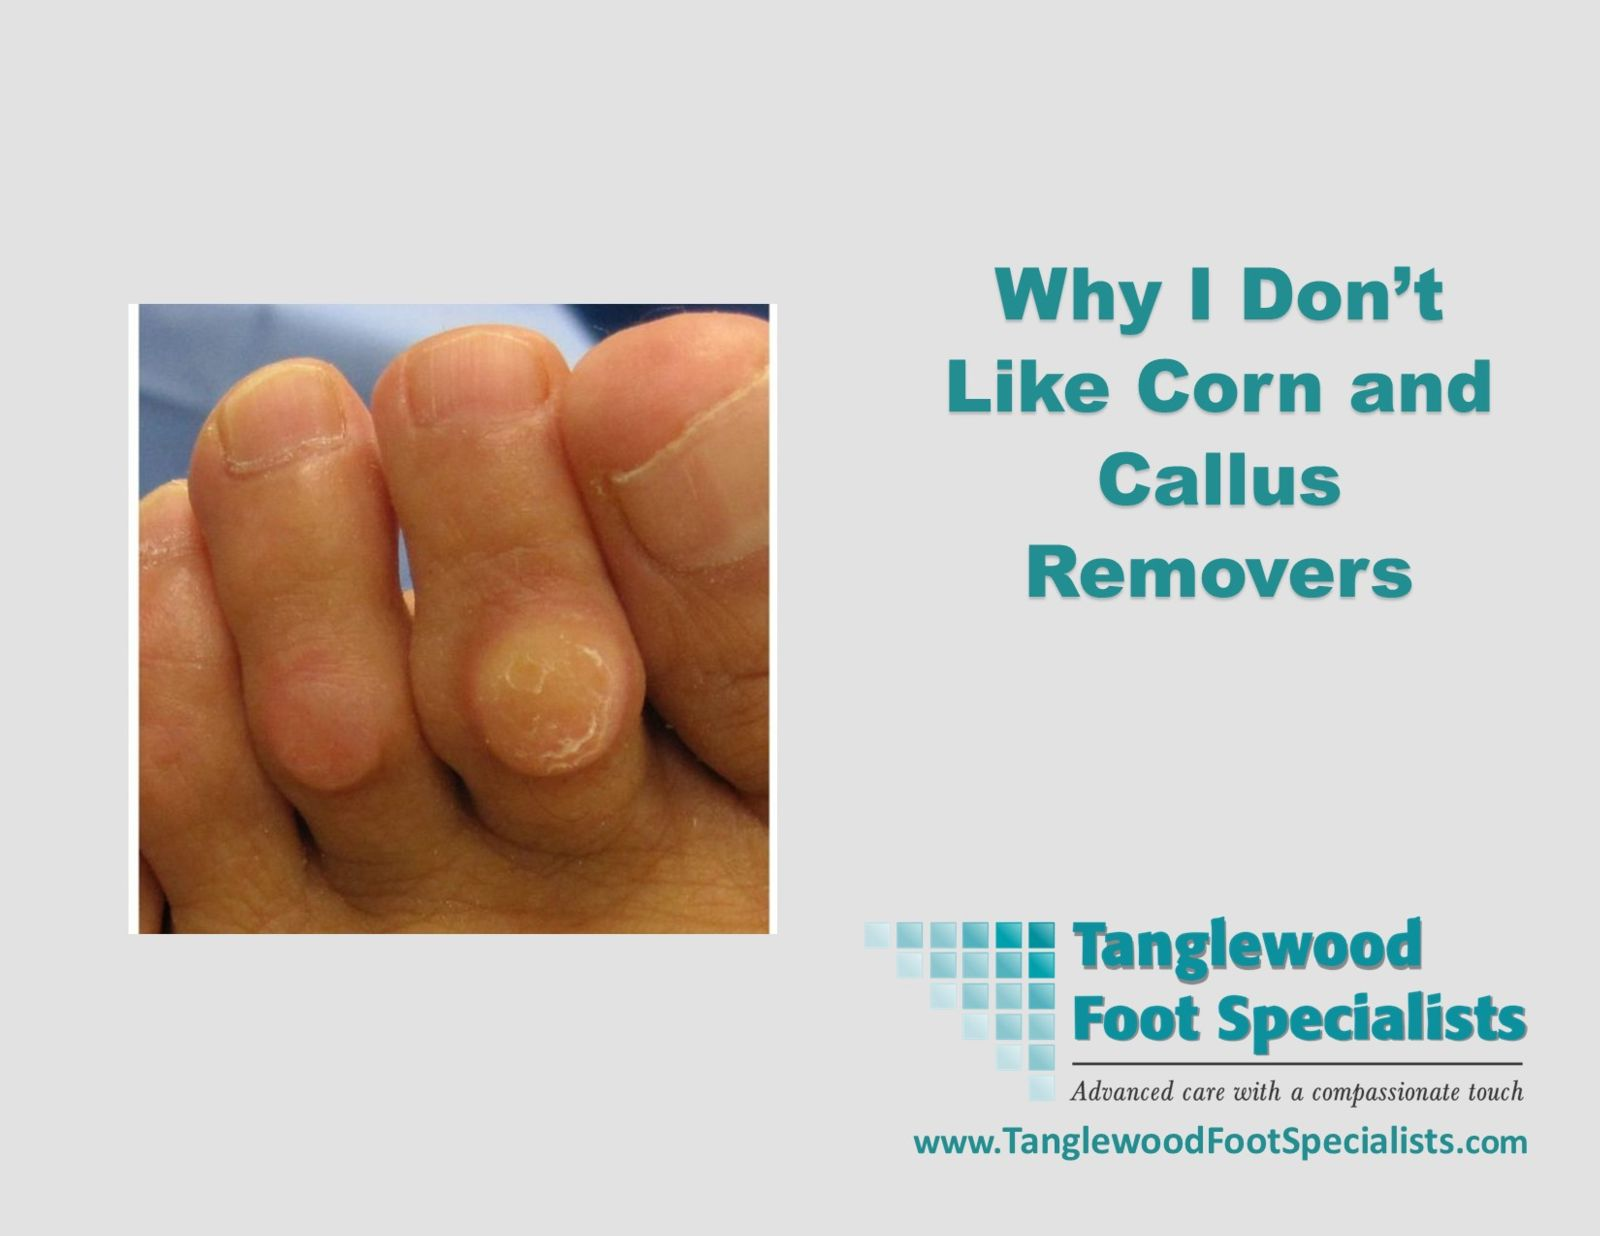 Houston podiatrist discusses Corn and Callus removers